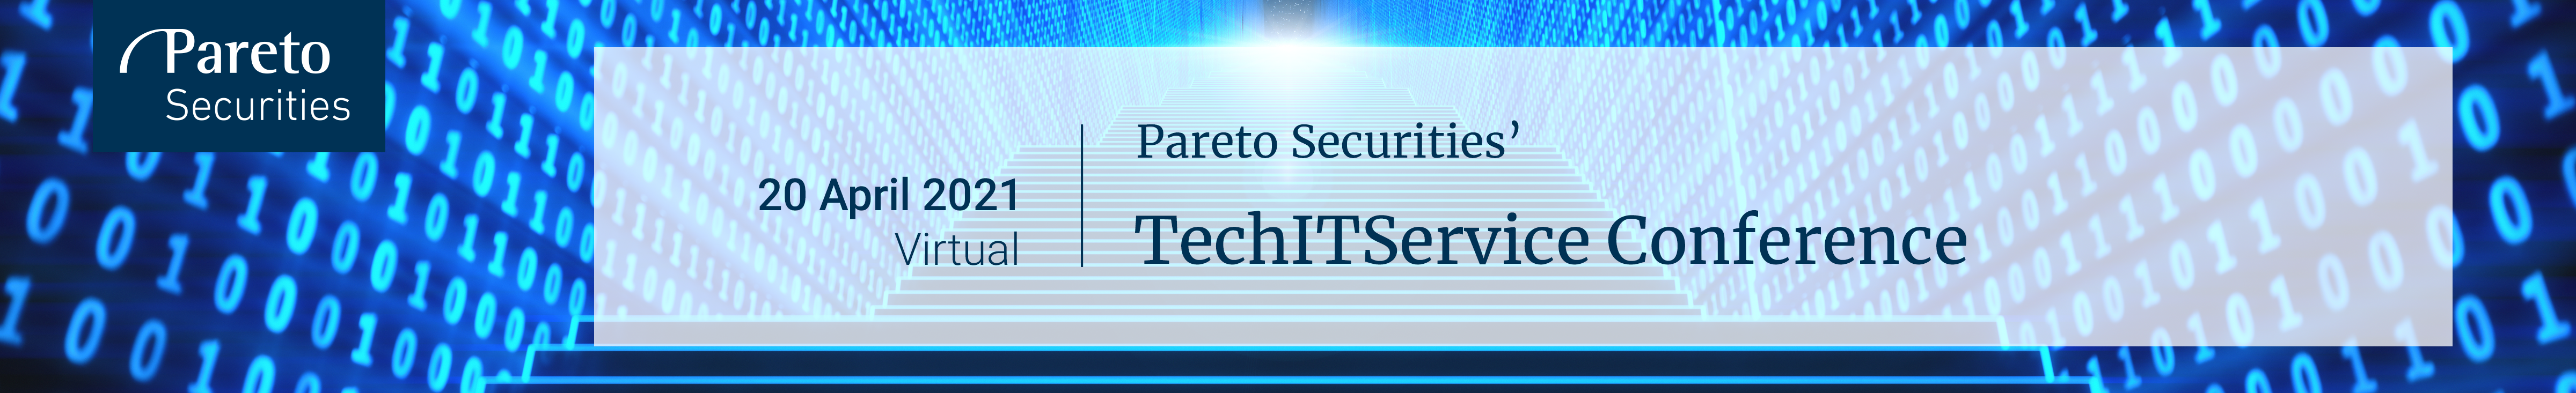 Header image for Pareto Securities' NordicDACH Virtual TechITService Conference 2021